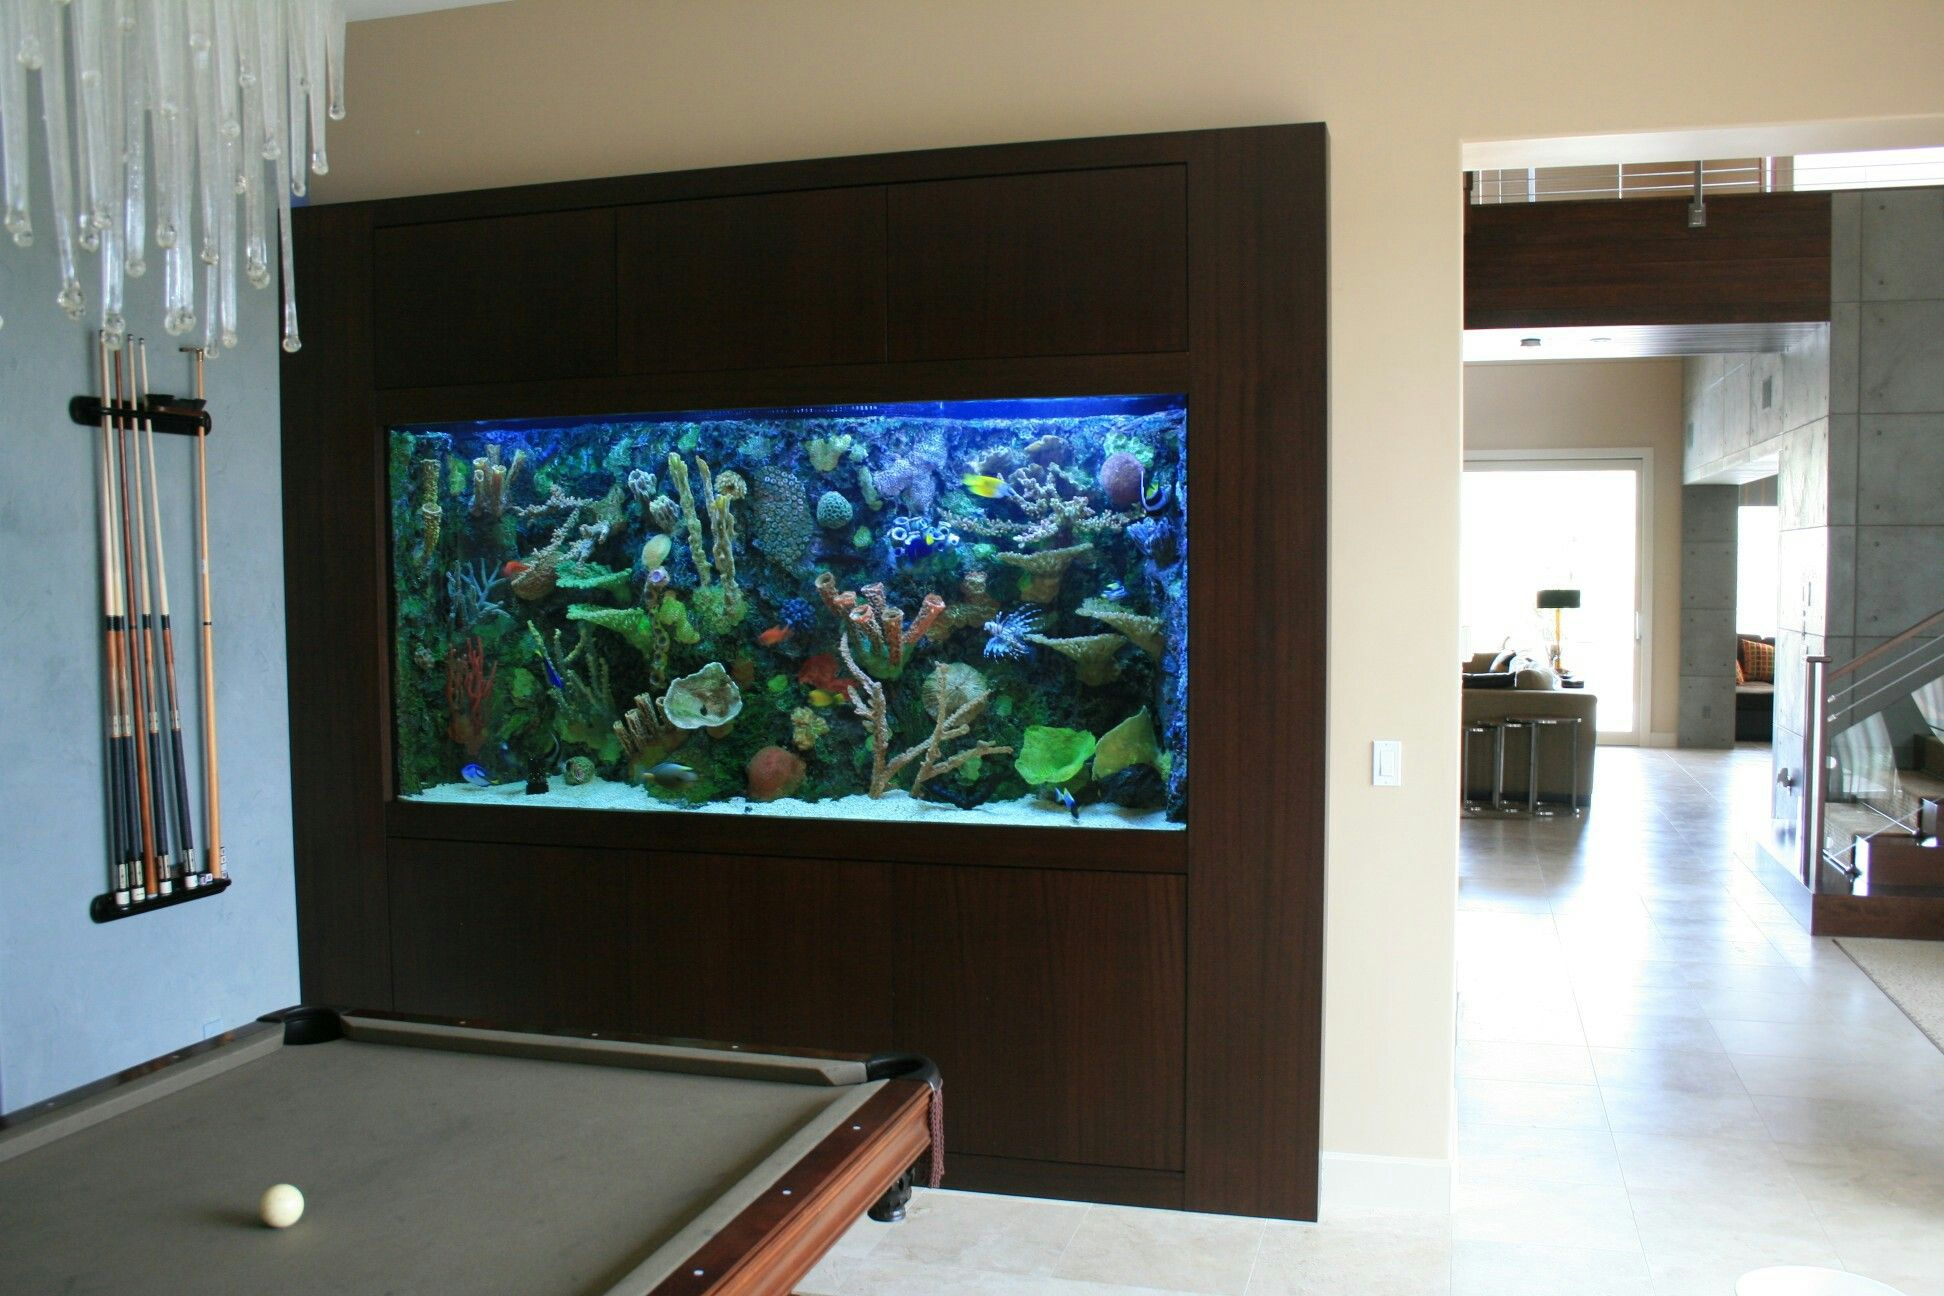 In Wall 600 Gallon With Faux Reef Aquarium Maintenance Las Vegas